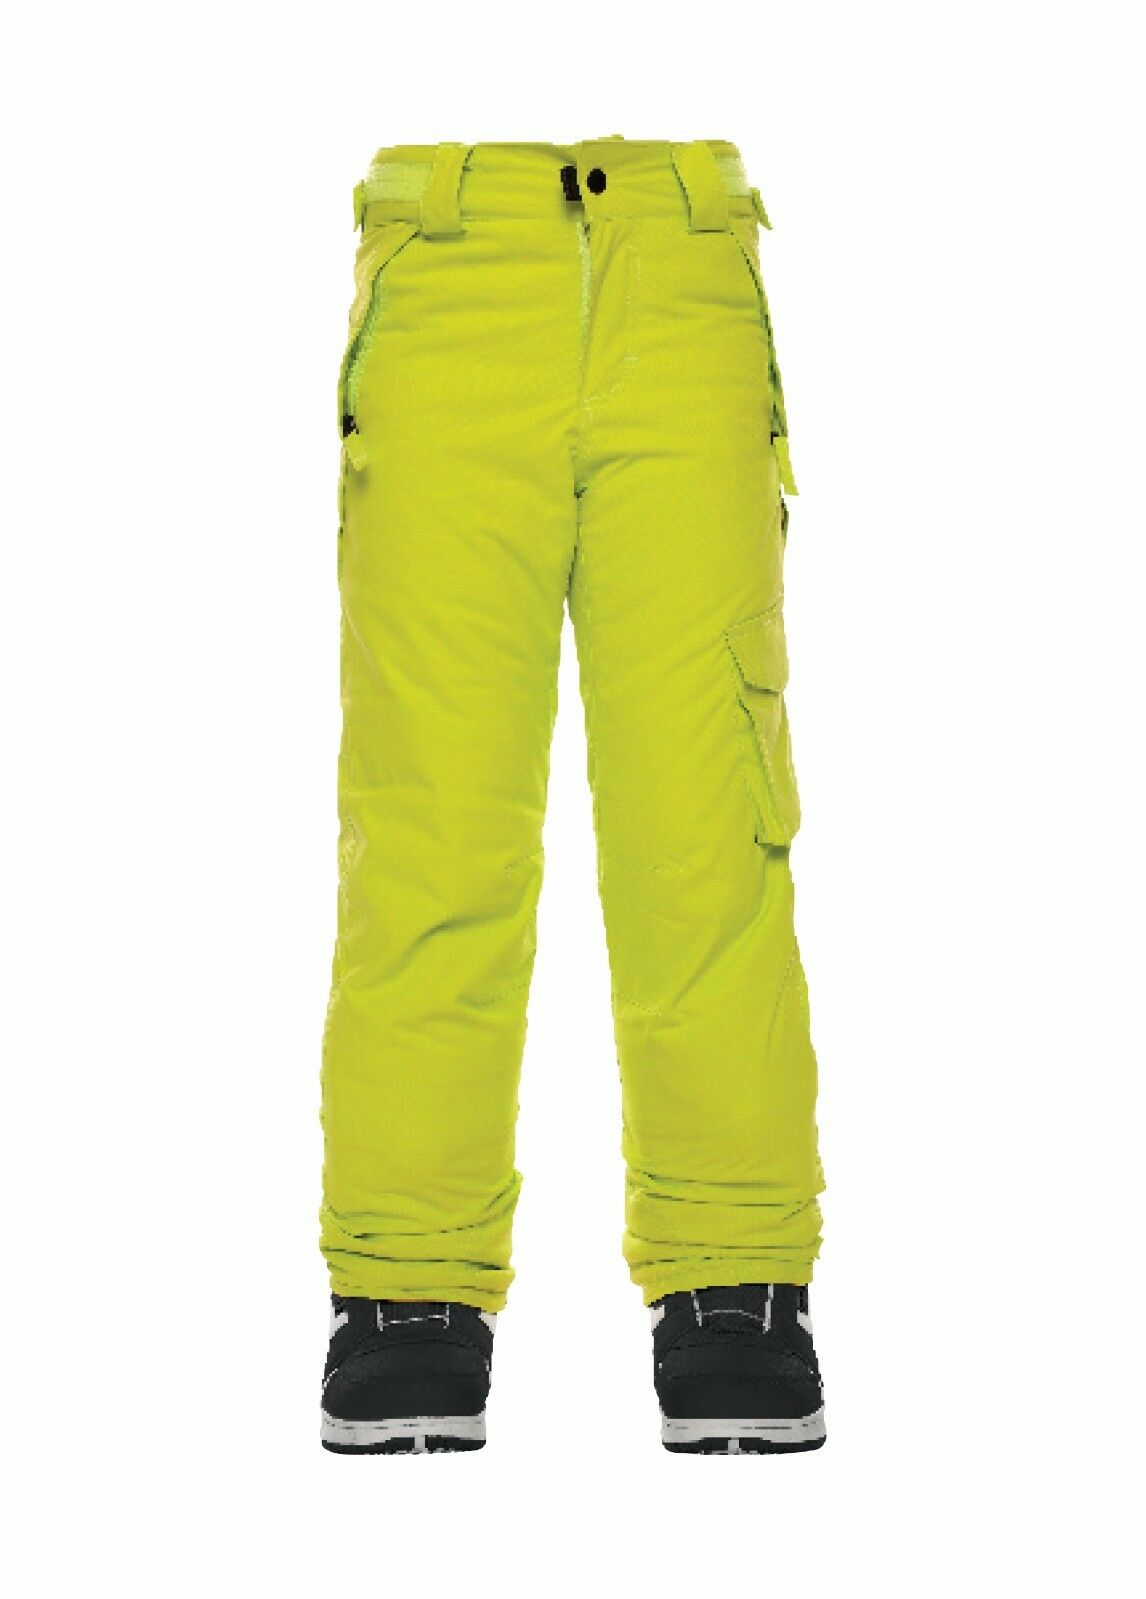 NWT 686 Kids Youth Agnes Insulated Snowboard Pant S Small 10K Pants Lime ac985